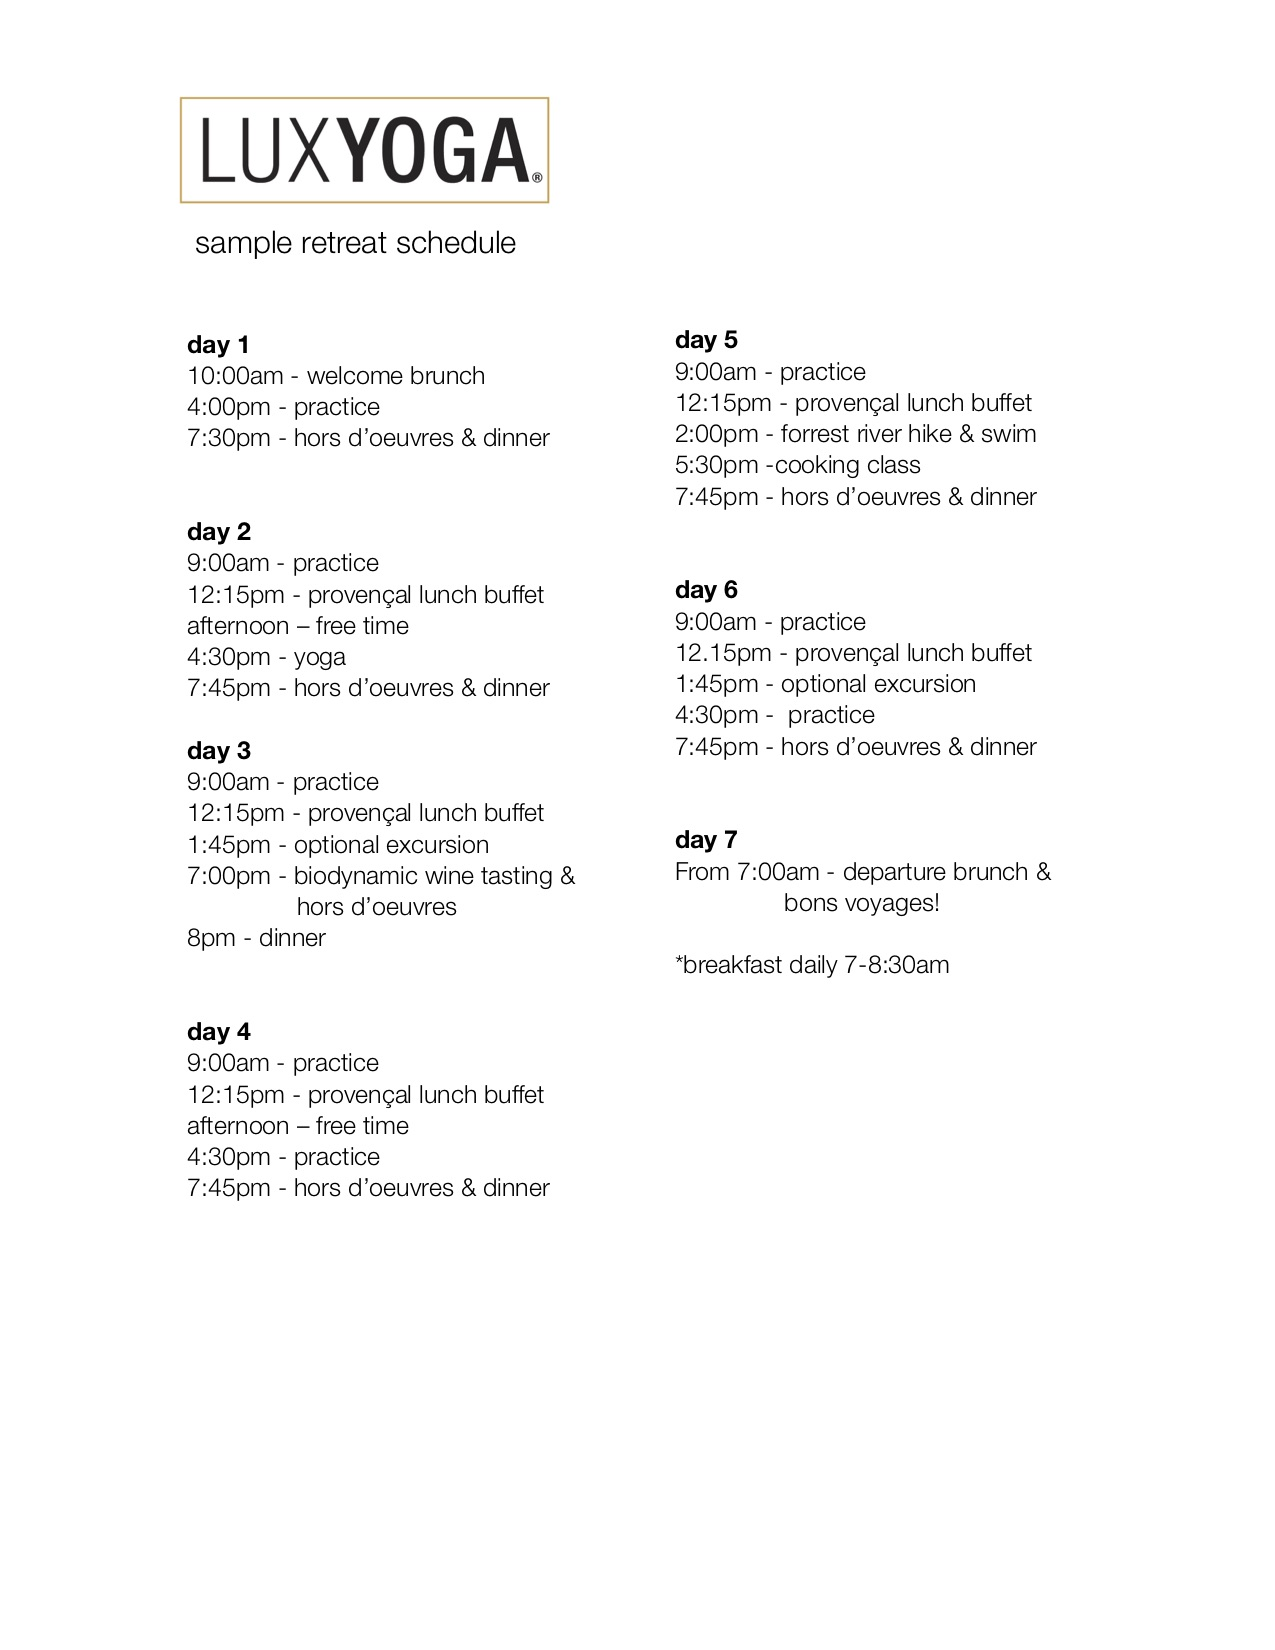 luxyoga sample vinyasa retreat schedule .jpg